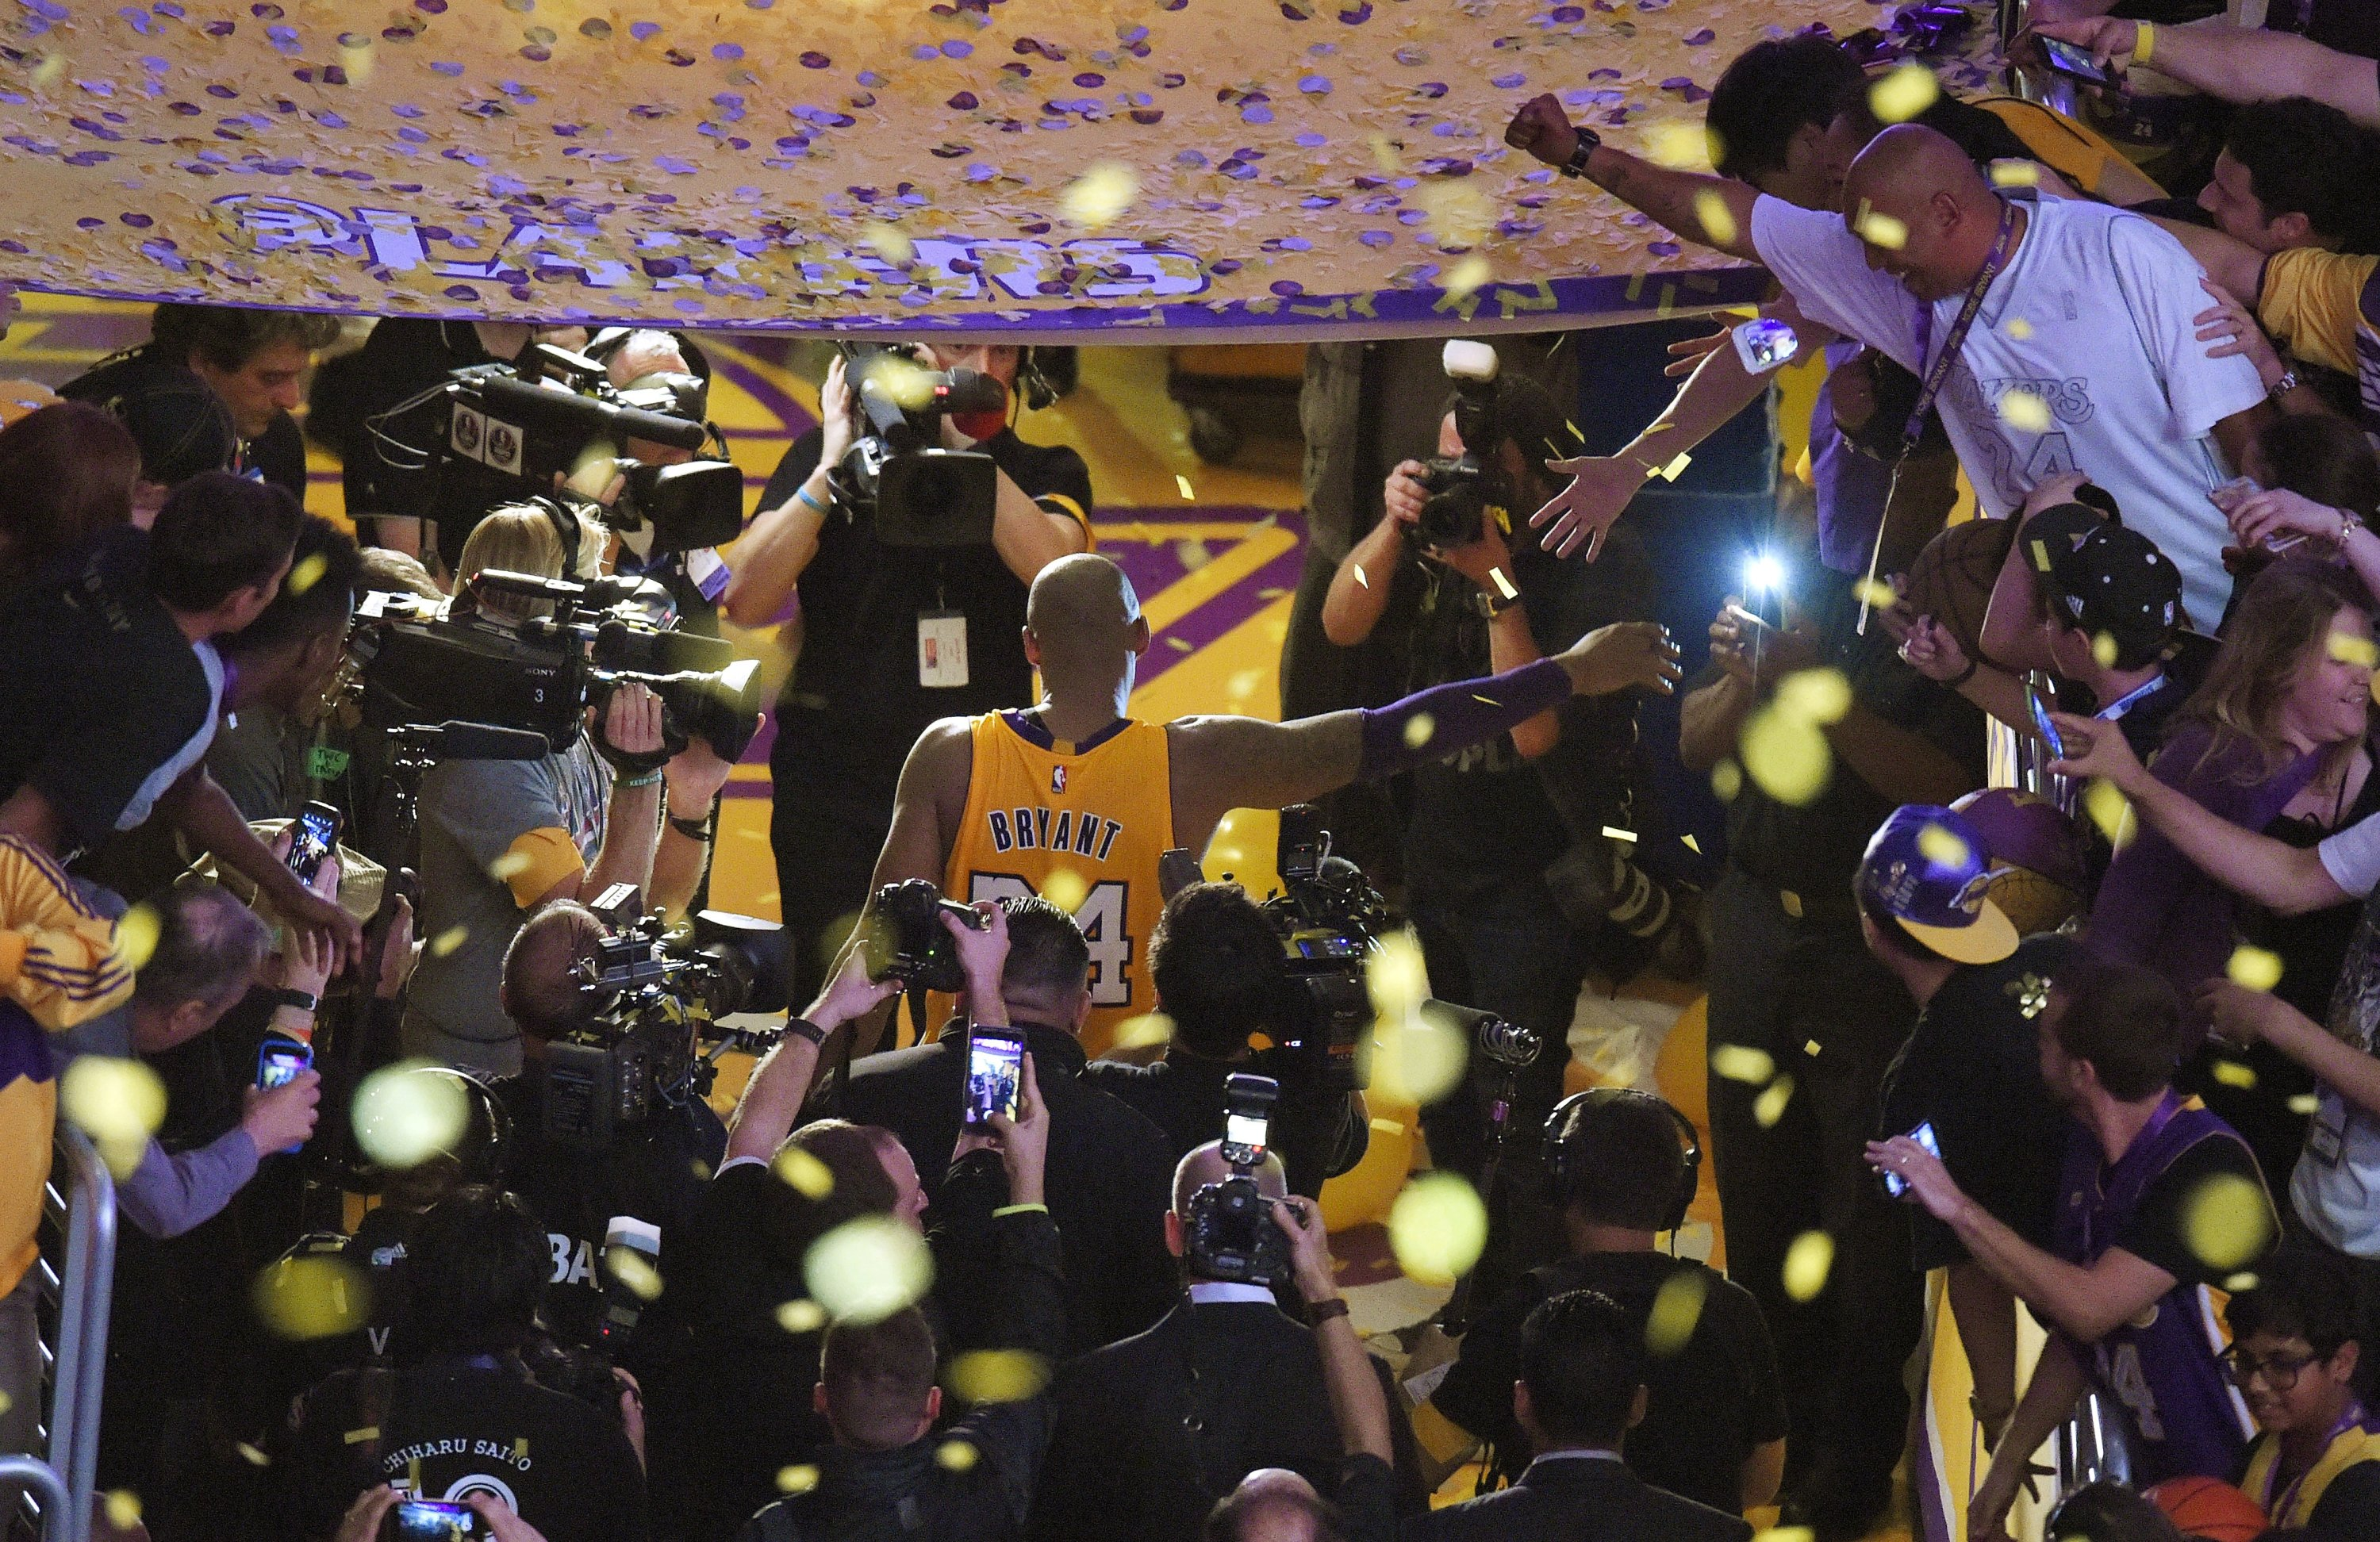 In this April 13, 2016, file photo, Los Angeles Lakers forward Kobe Bryant walks off the court after finishing his last NBA basketball game before retirement in Los Angeles. (AP Photo)